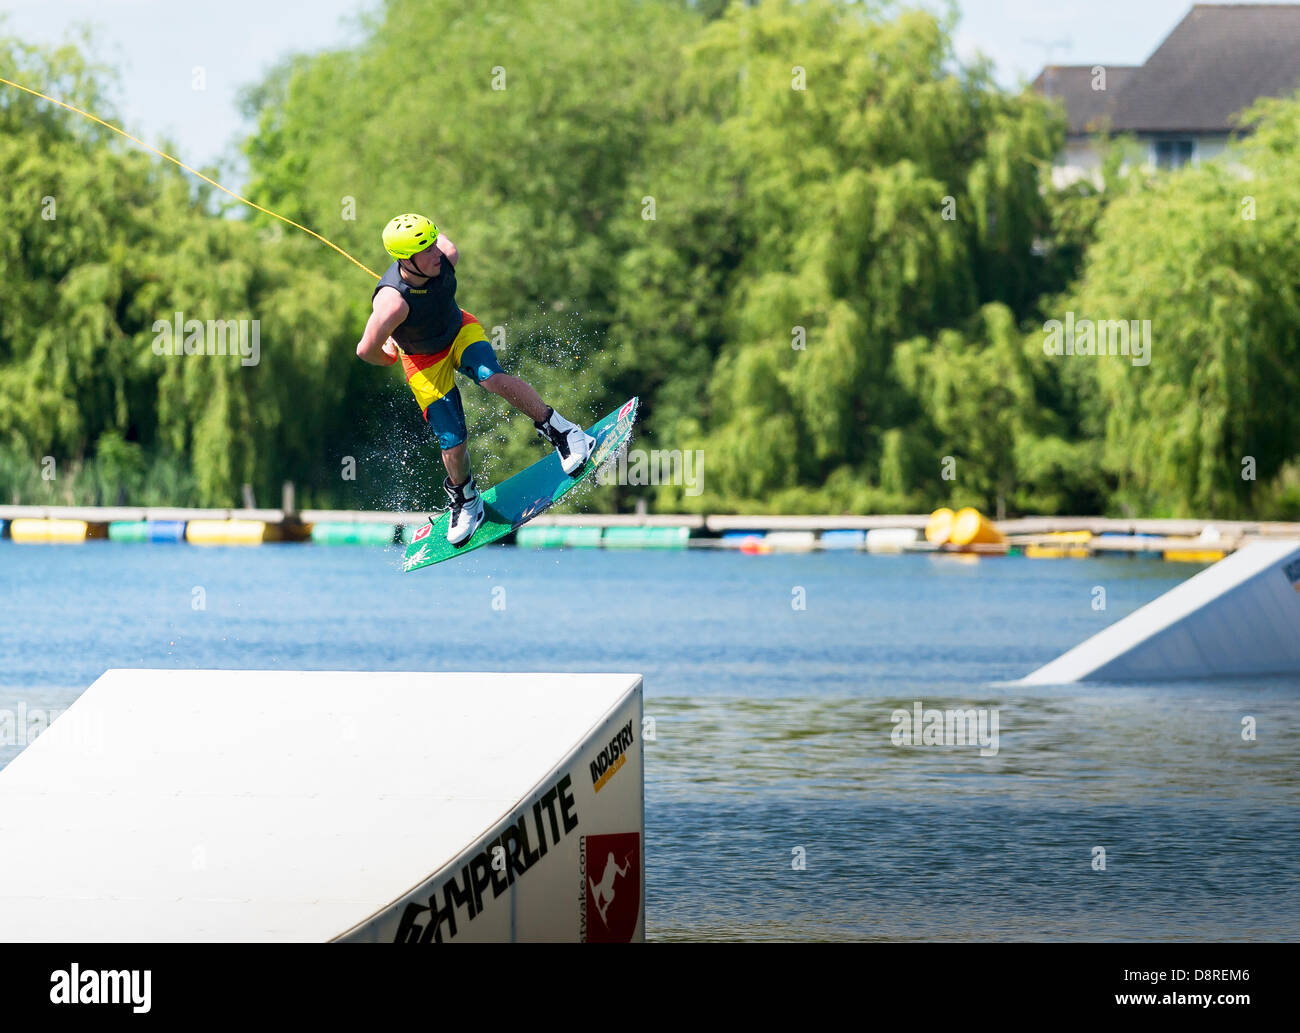 Basildon, Essex, UK. 3rd June 2013. Members of the public took the opportunity to show off their wakeboarding skills - Stock Image